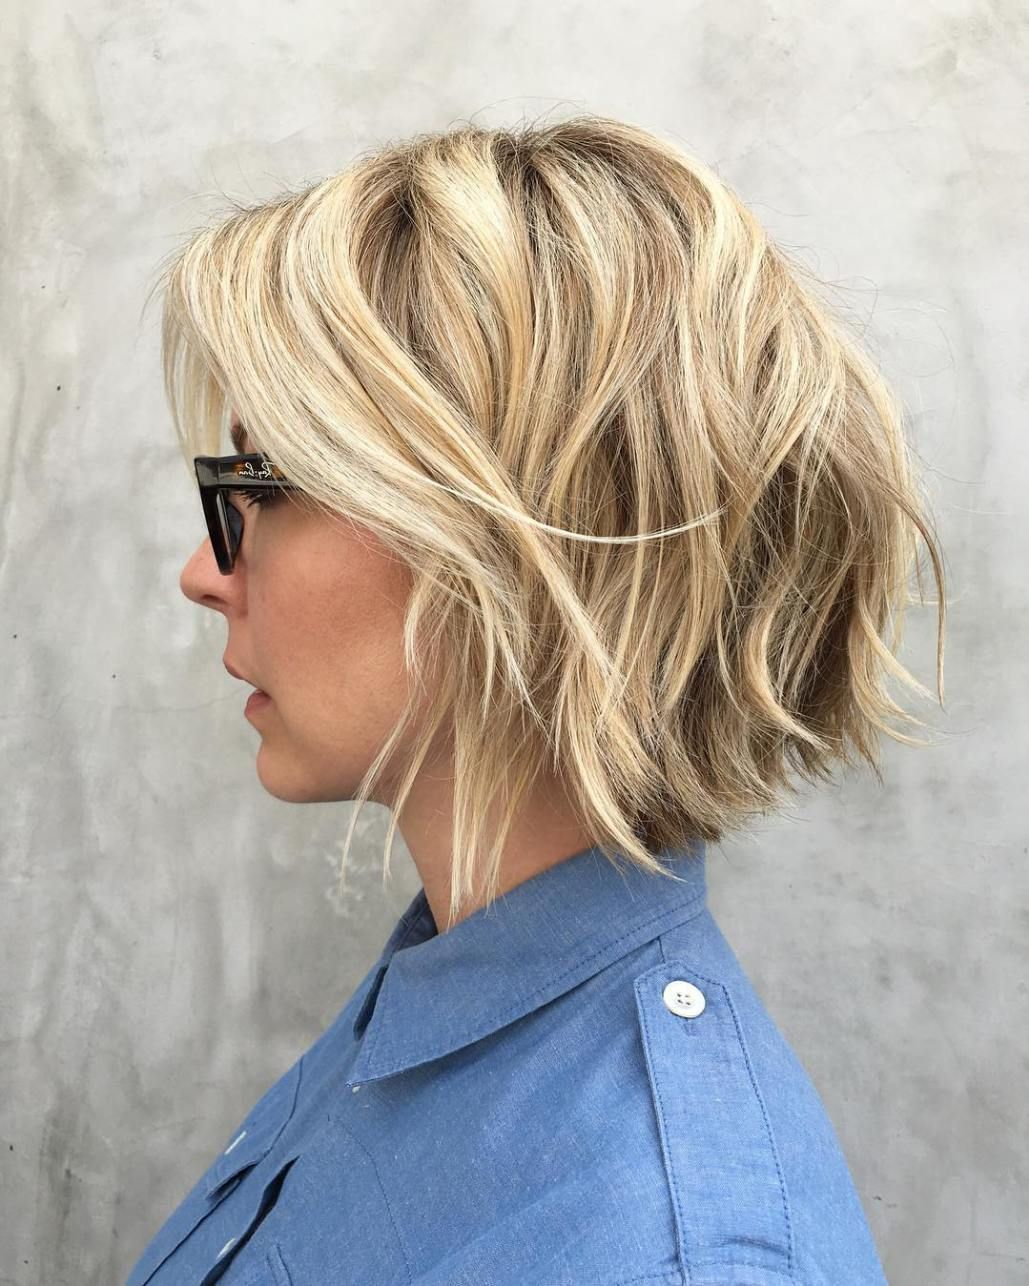 30 Trendiest Shaggy Bob Haircuts Of The Season Hair Styles Shaggy Bob Haircut Choppy Bob Hairstyles